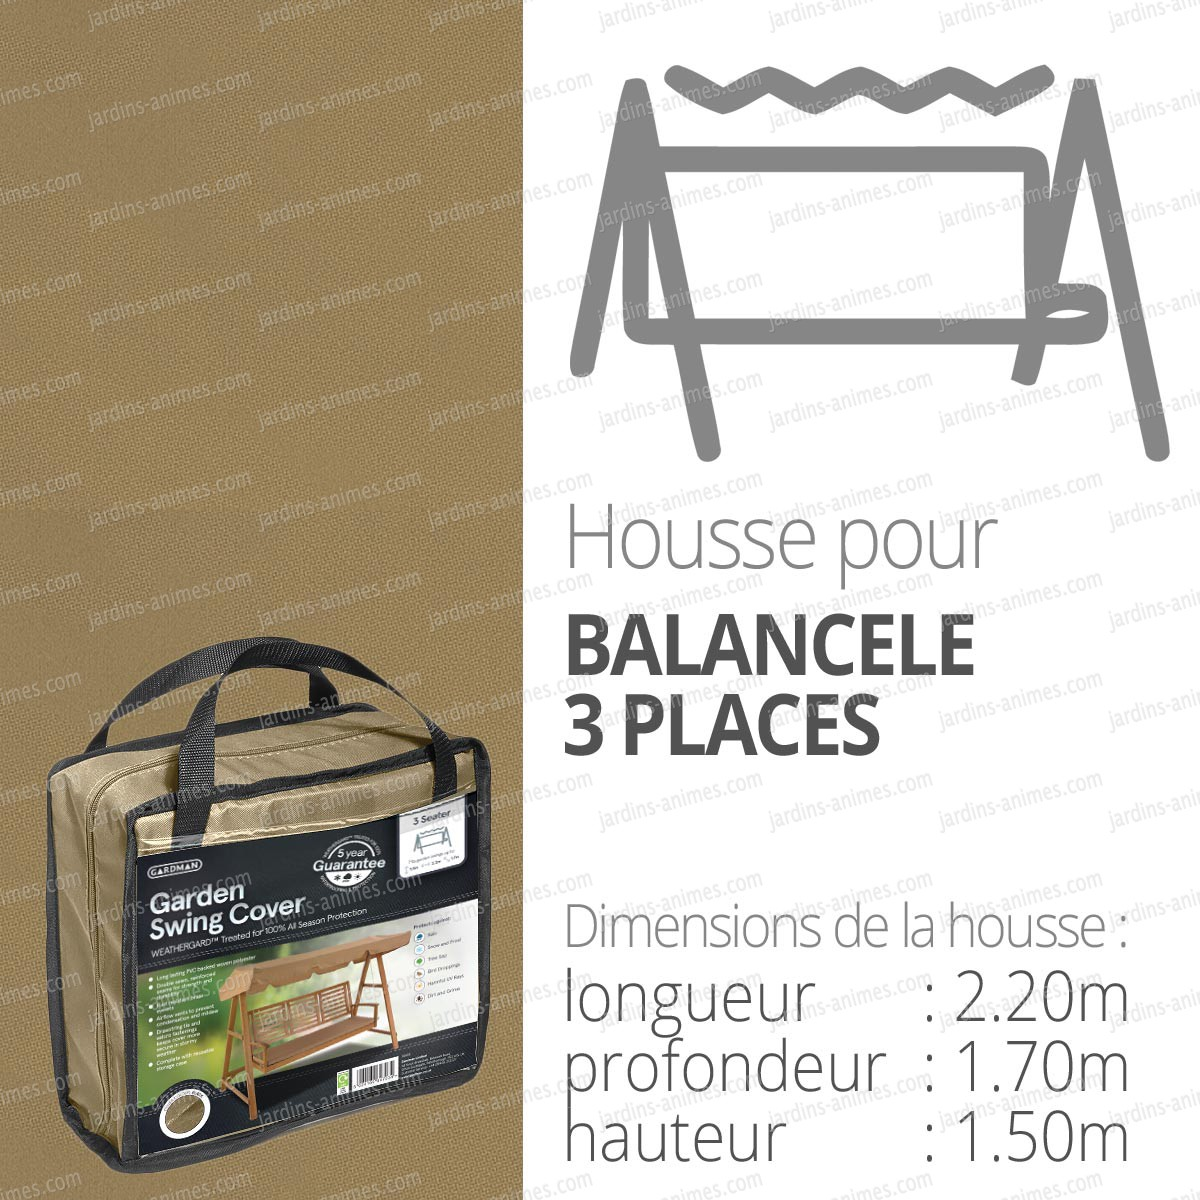 Housse bache protection balancelle 3 places long 220cm - Housse de balancelle 3 places ...